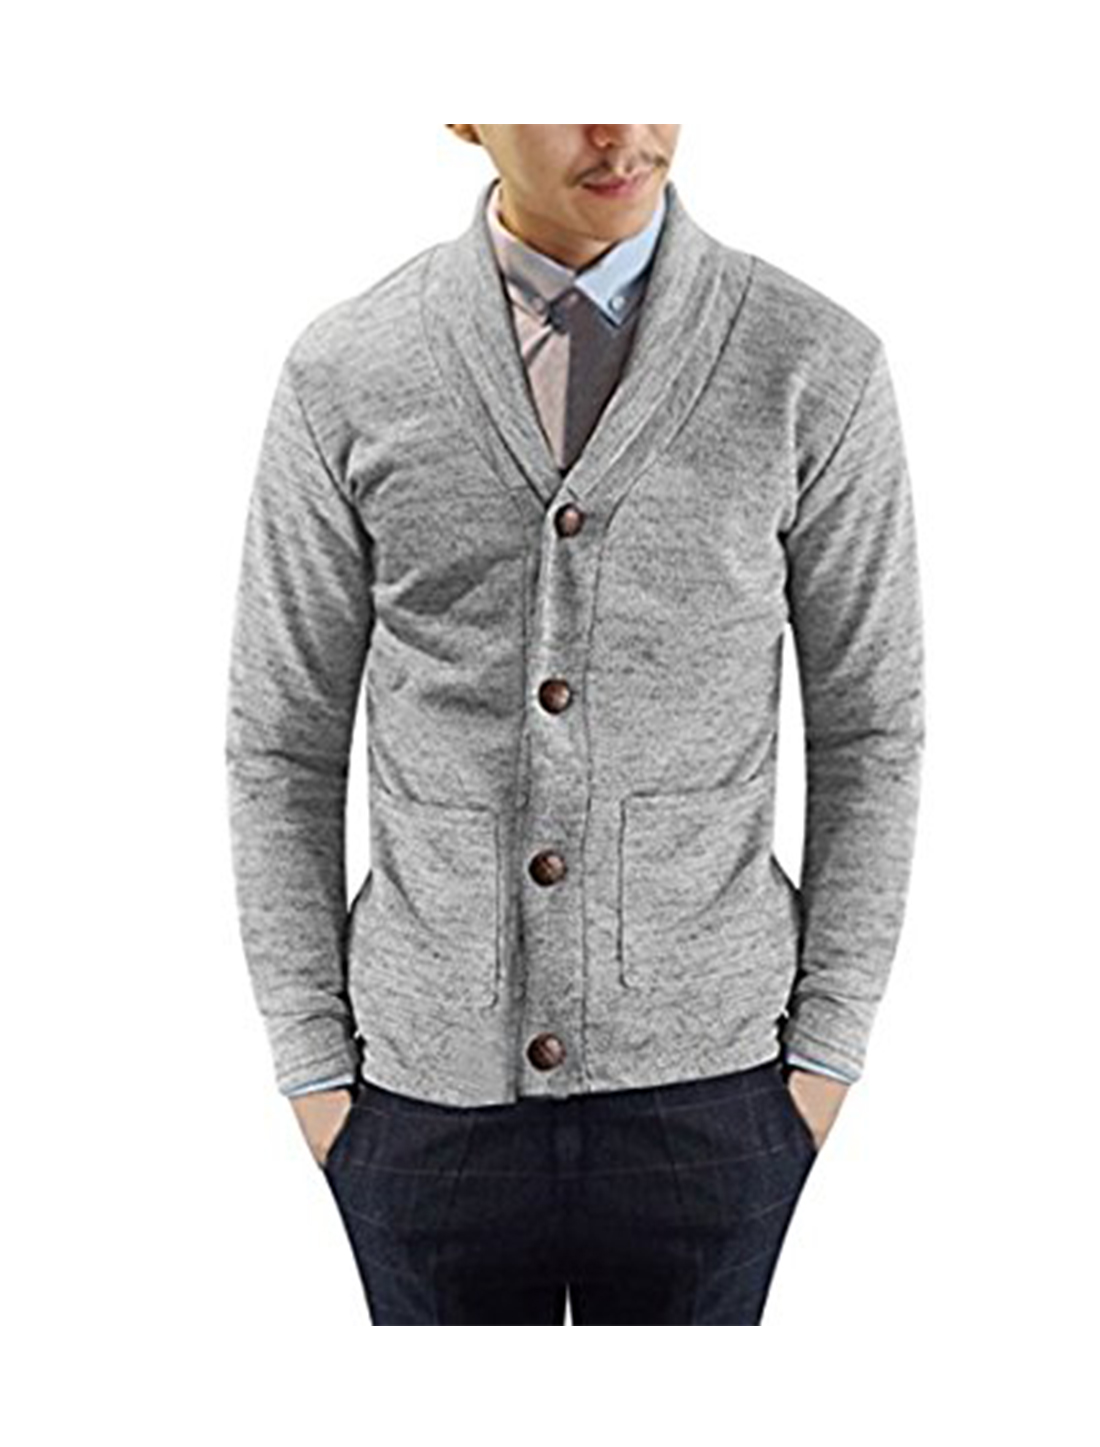 Men Shawl Collar Long Sleeves Button Down Knit Cardigan Light Gray M